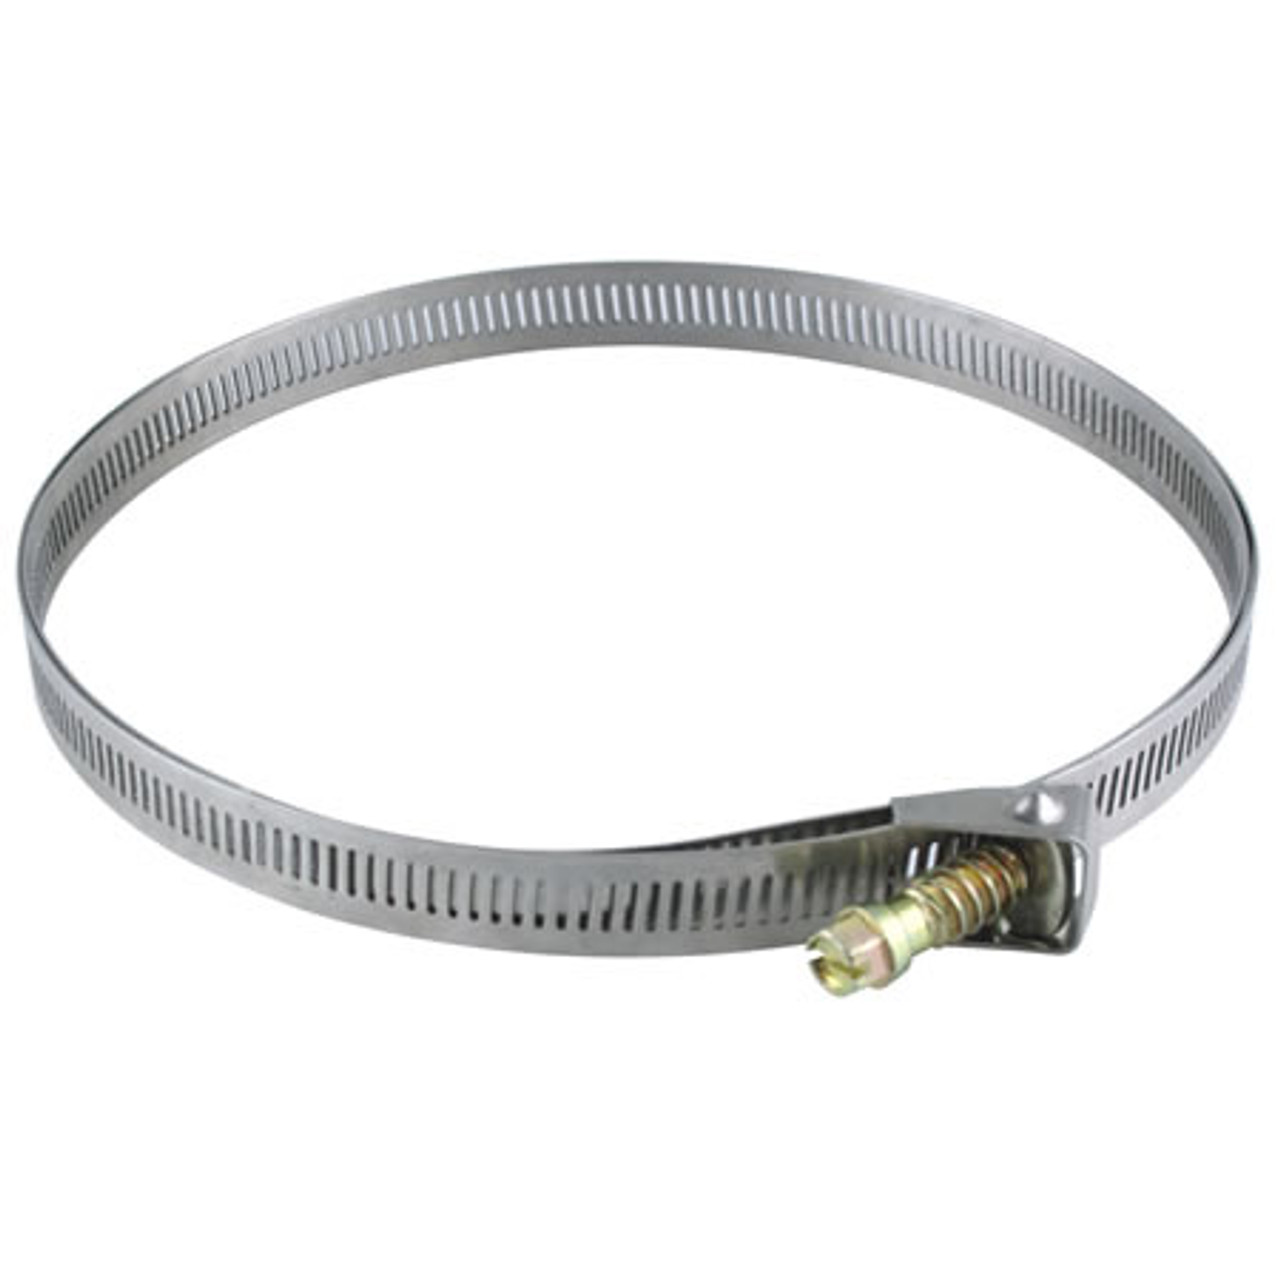 Stainless Steel Mounting Straps